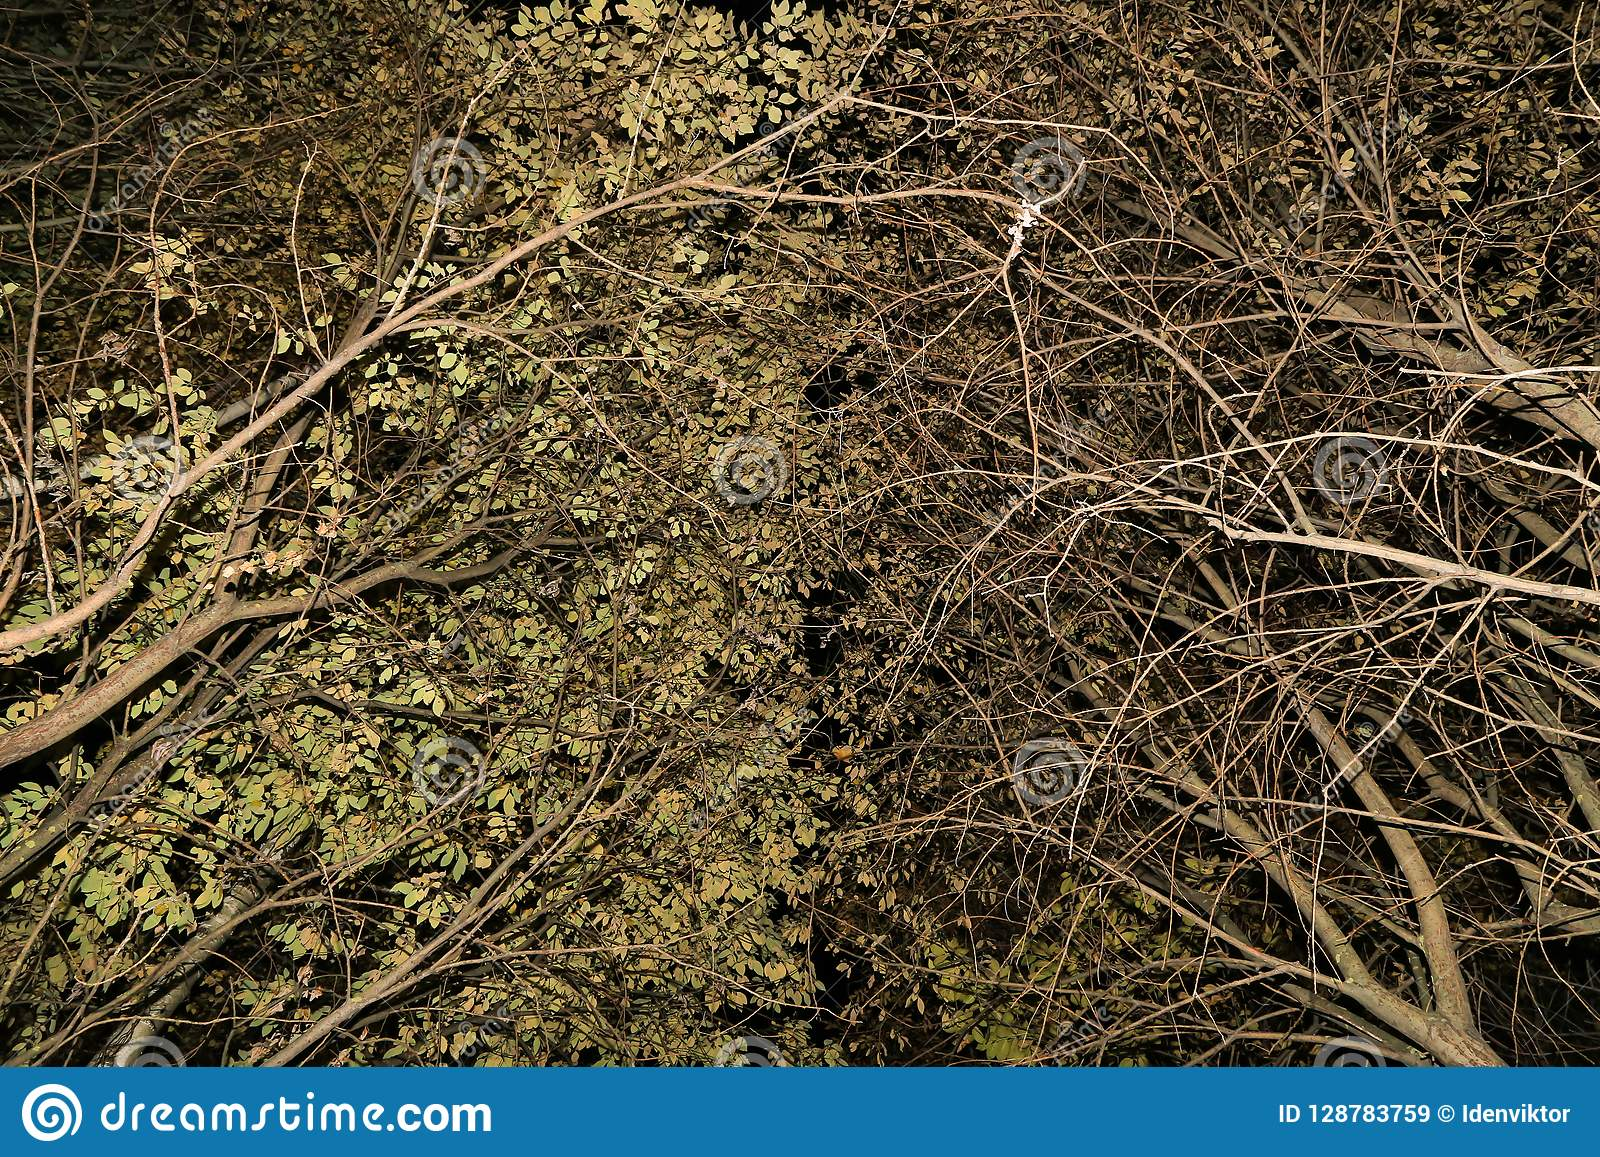 Trees Branches, leaves nature abstract background texture